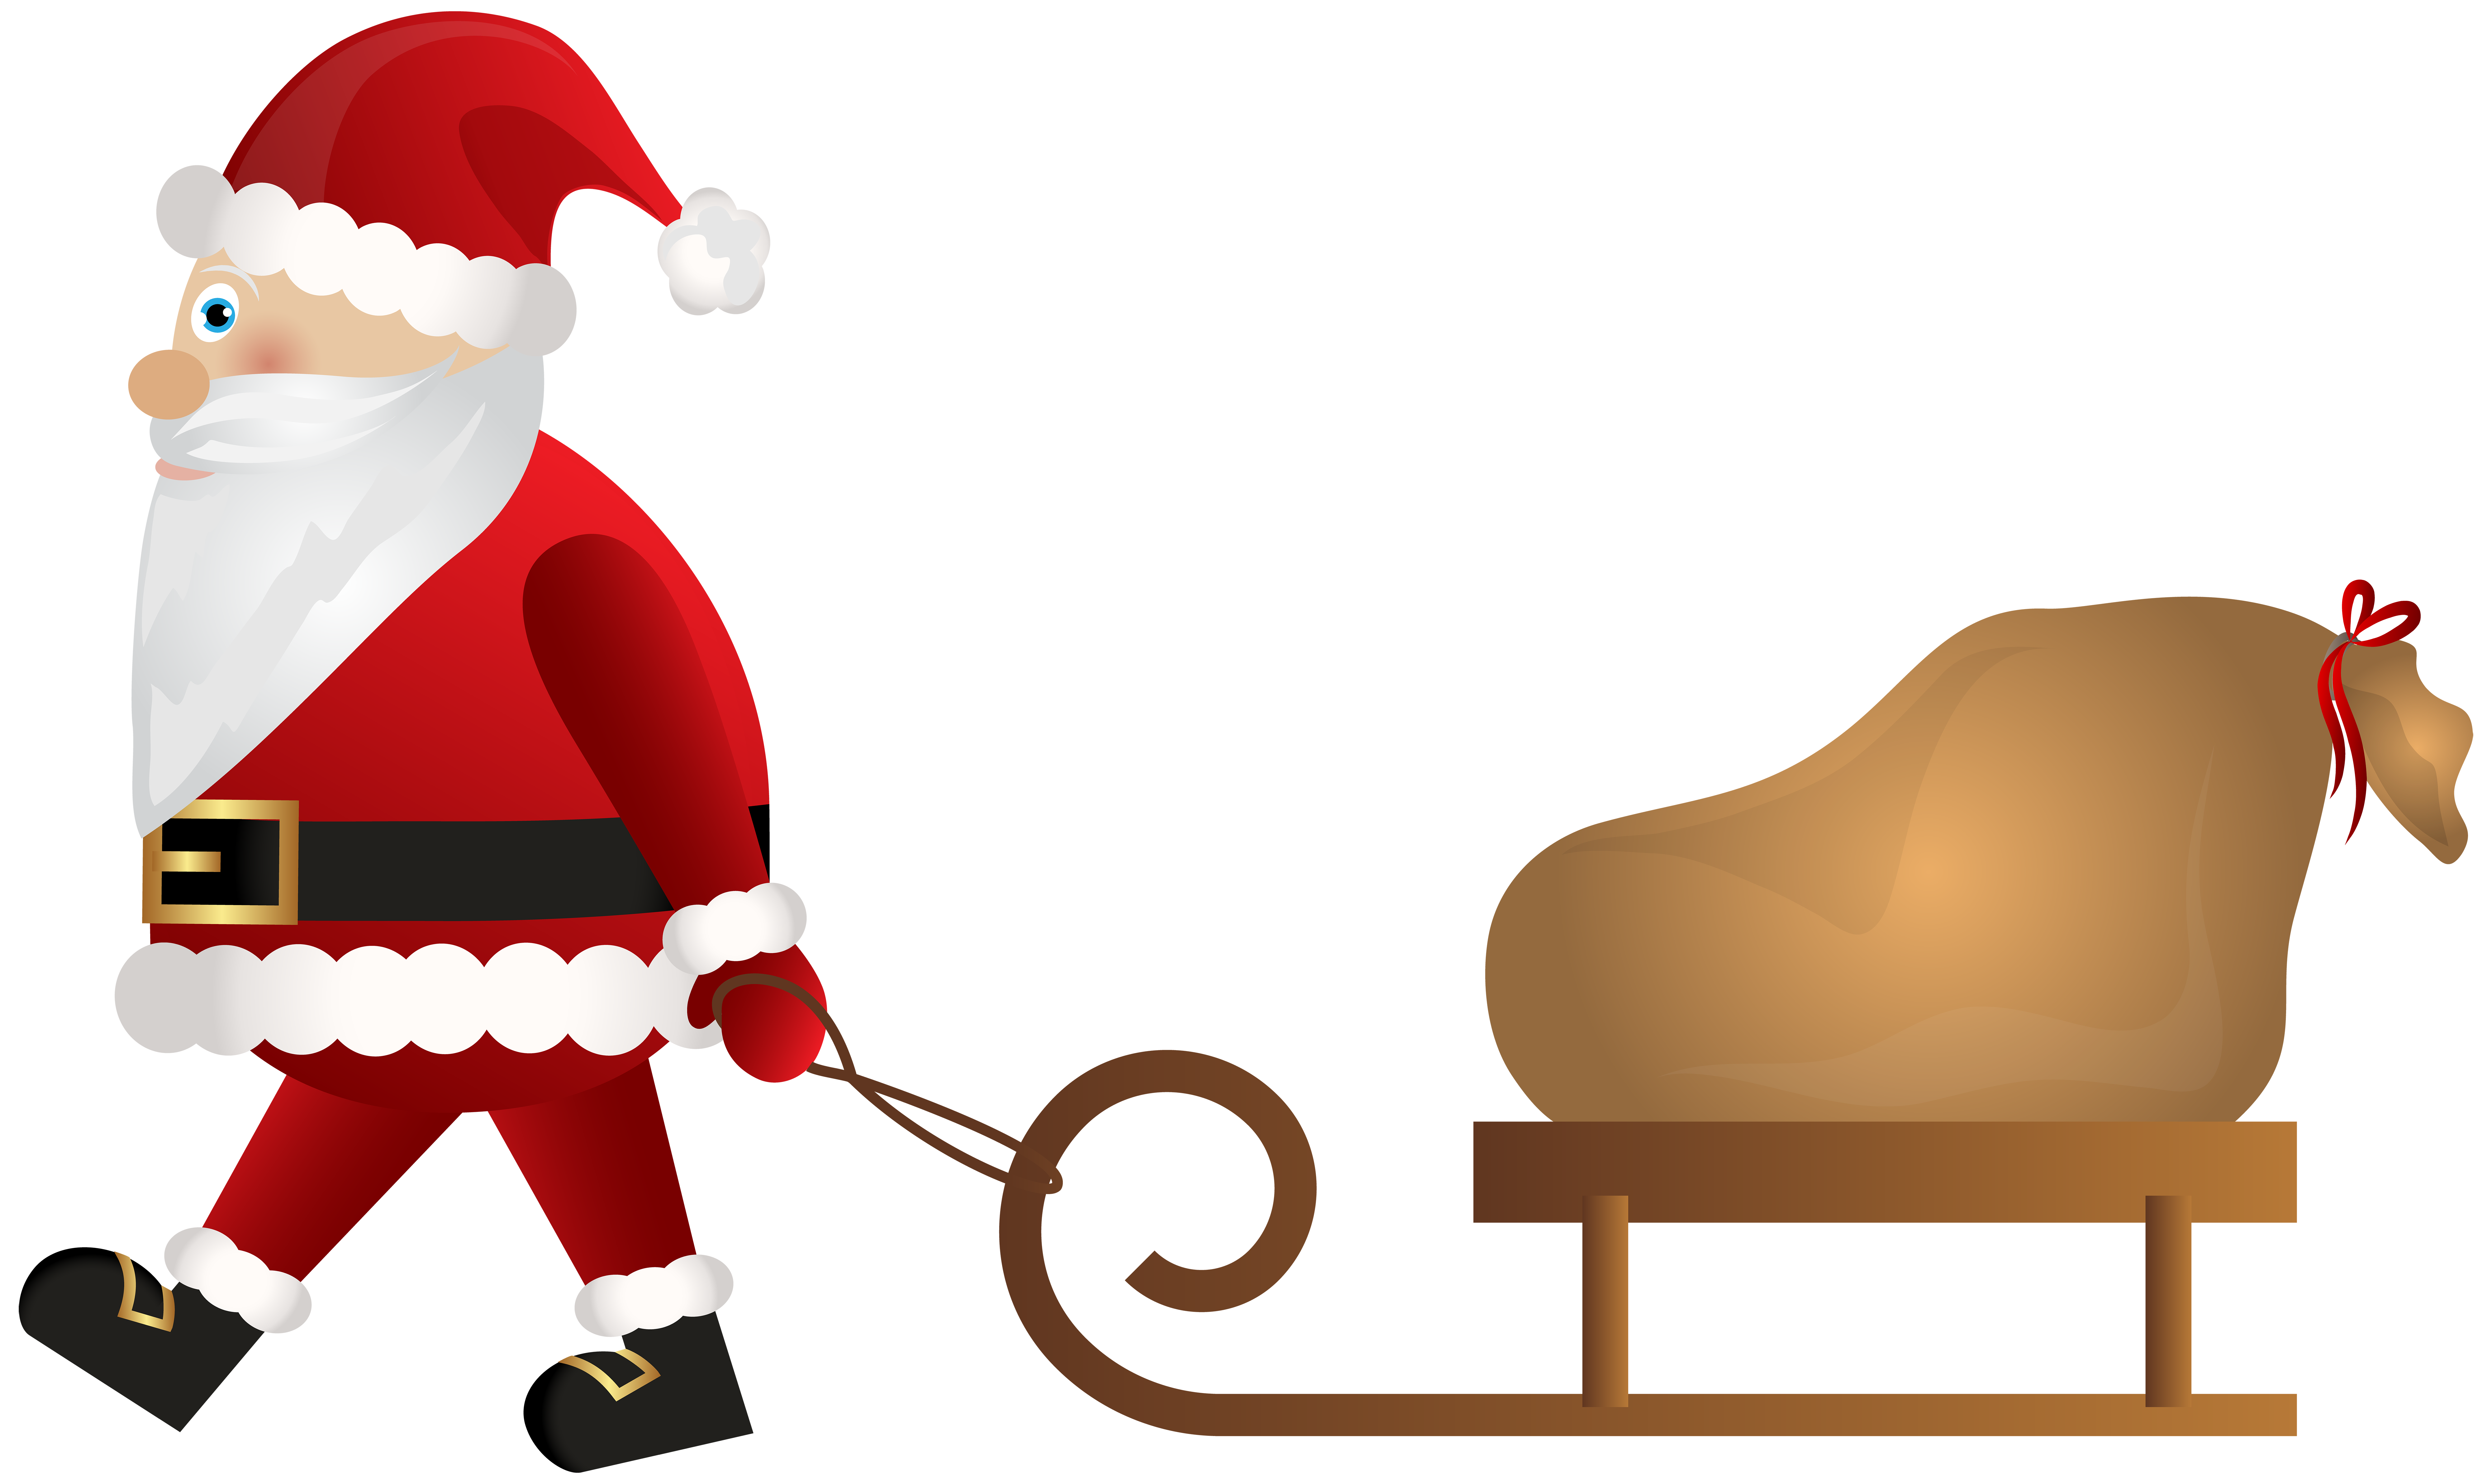 Sleigh clipart wooden sled. Santa claus with png